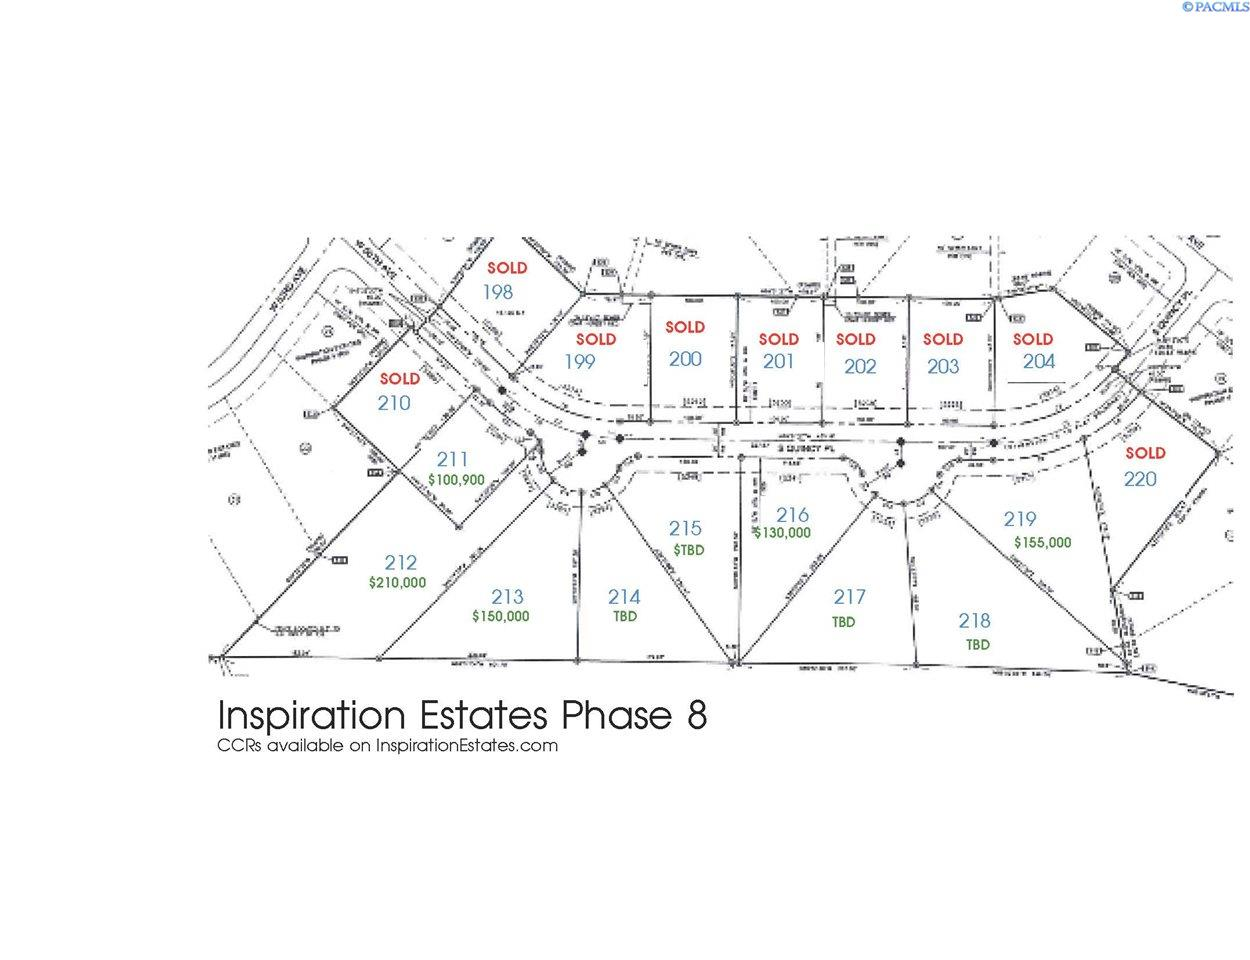 Land for Sale at IE LOT 219 PHASE VIII Kennewick, Washington 99337 United States